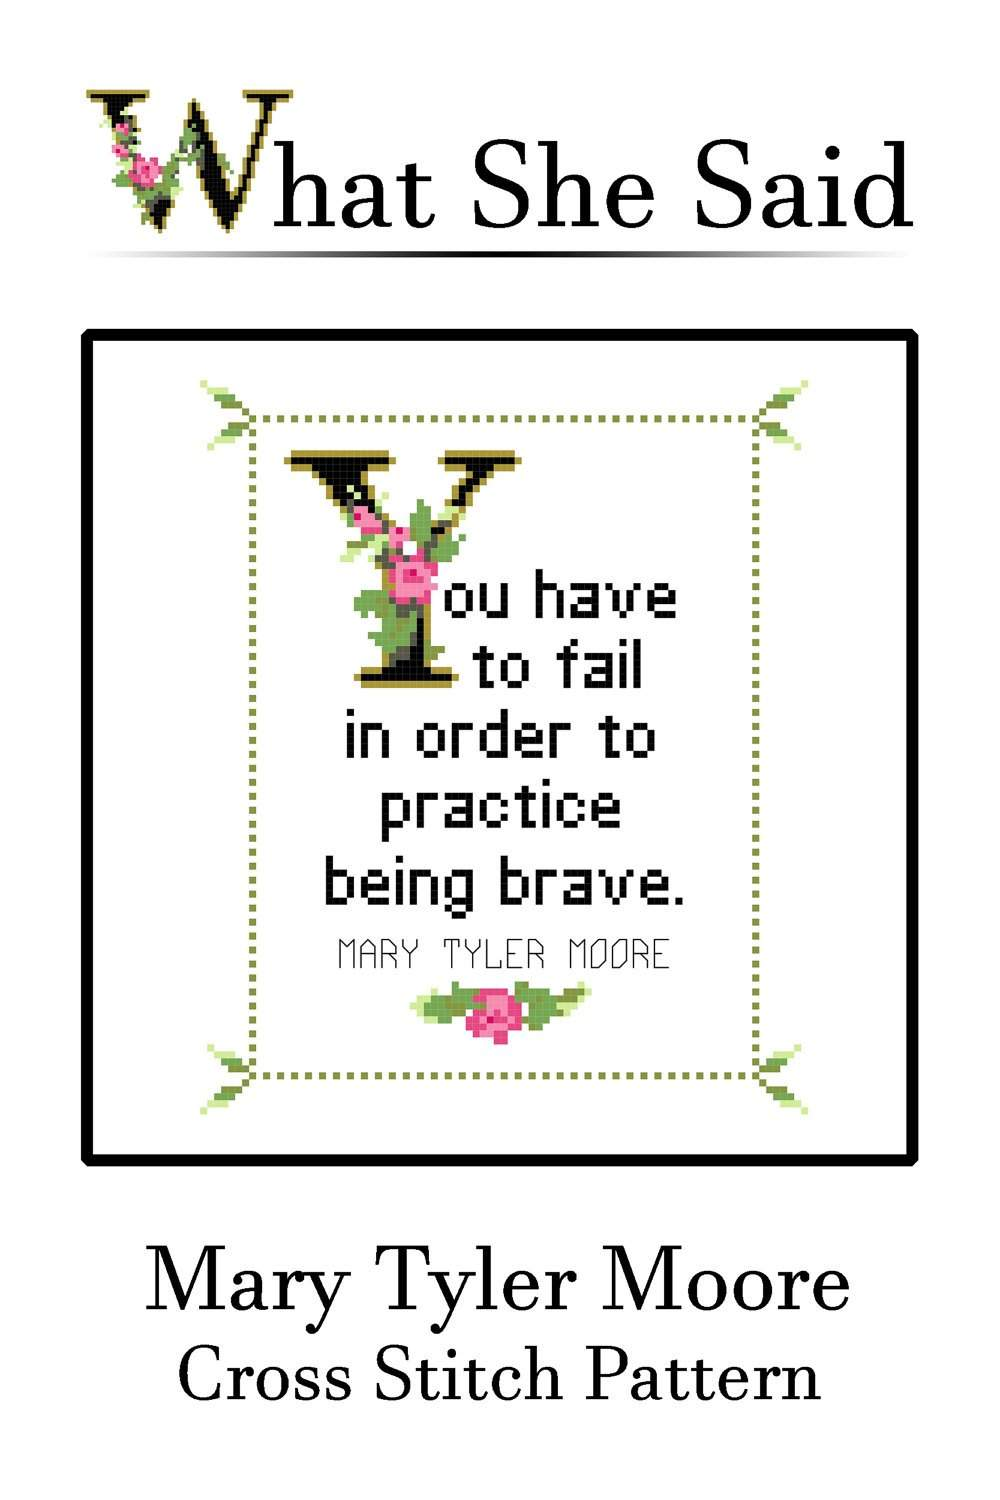 Mary Tyler Moore Quote Easy Cross Stitch Pattern: You have to fail in order to practice being brave. (Instant PDF Download)-What She Said Stitches